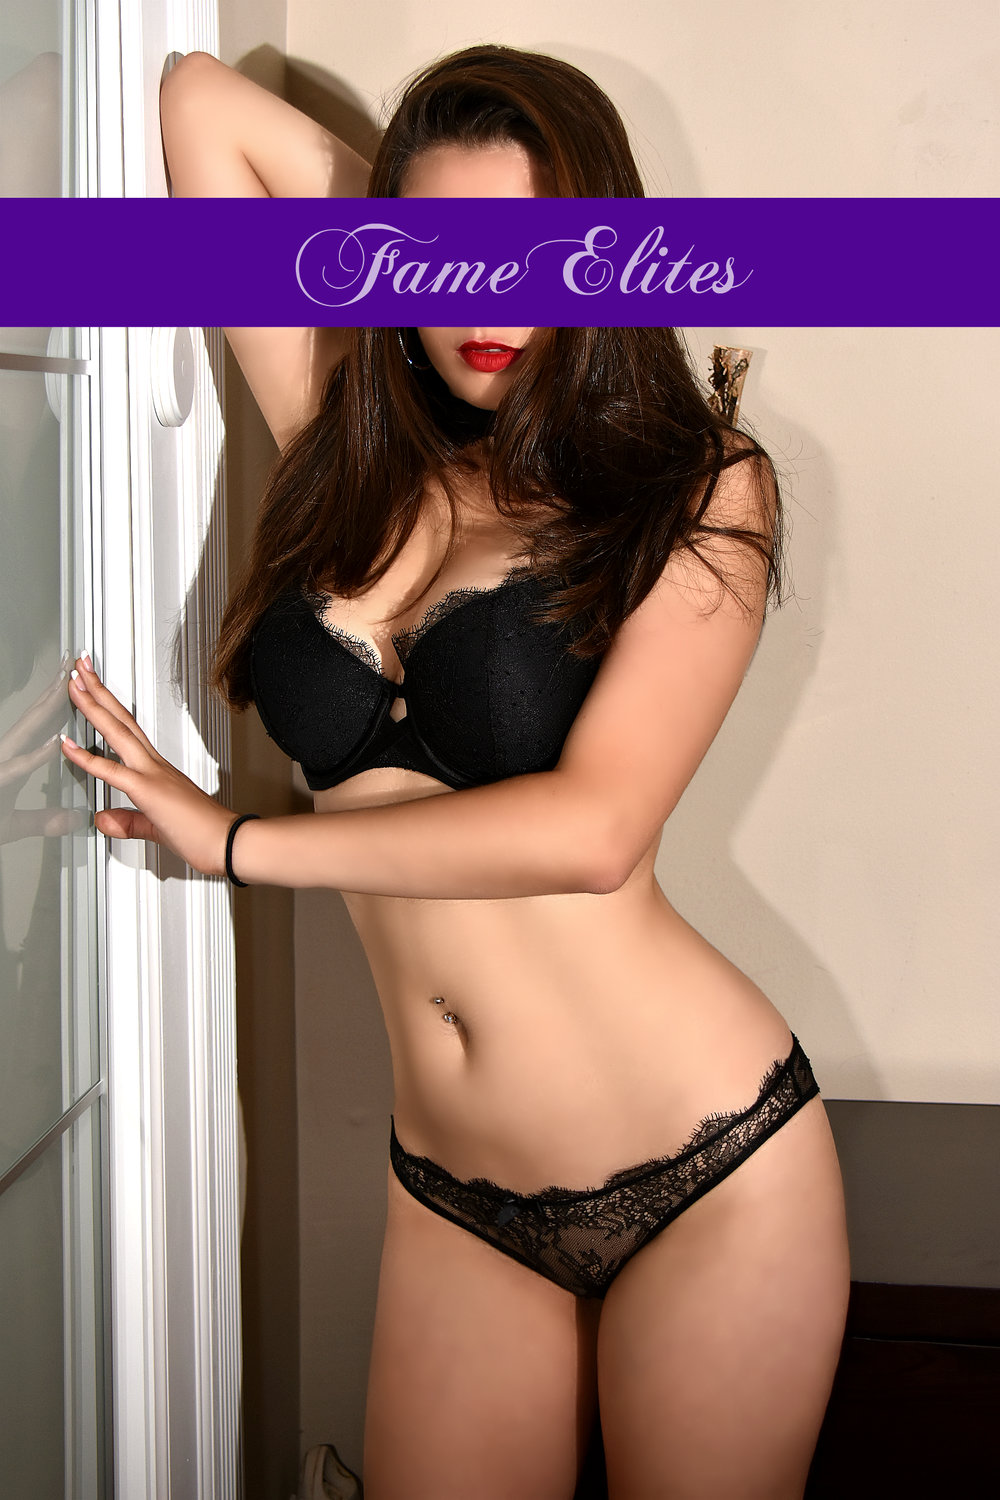 "alana - Age: Mid 20'sHeight: 5'7""Measurements: 34-24-36Weight: 118 lbsHair: BrunetteEye: BrownDress Size: 0Hobbies/interests: Fitness, Languages, PianoCharacter Traits: Bright, communicativeOccupation: Student"